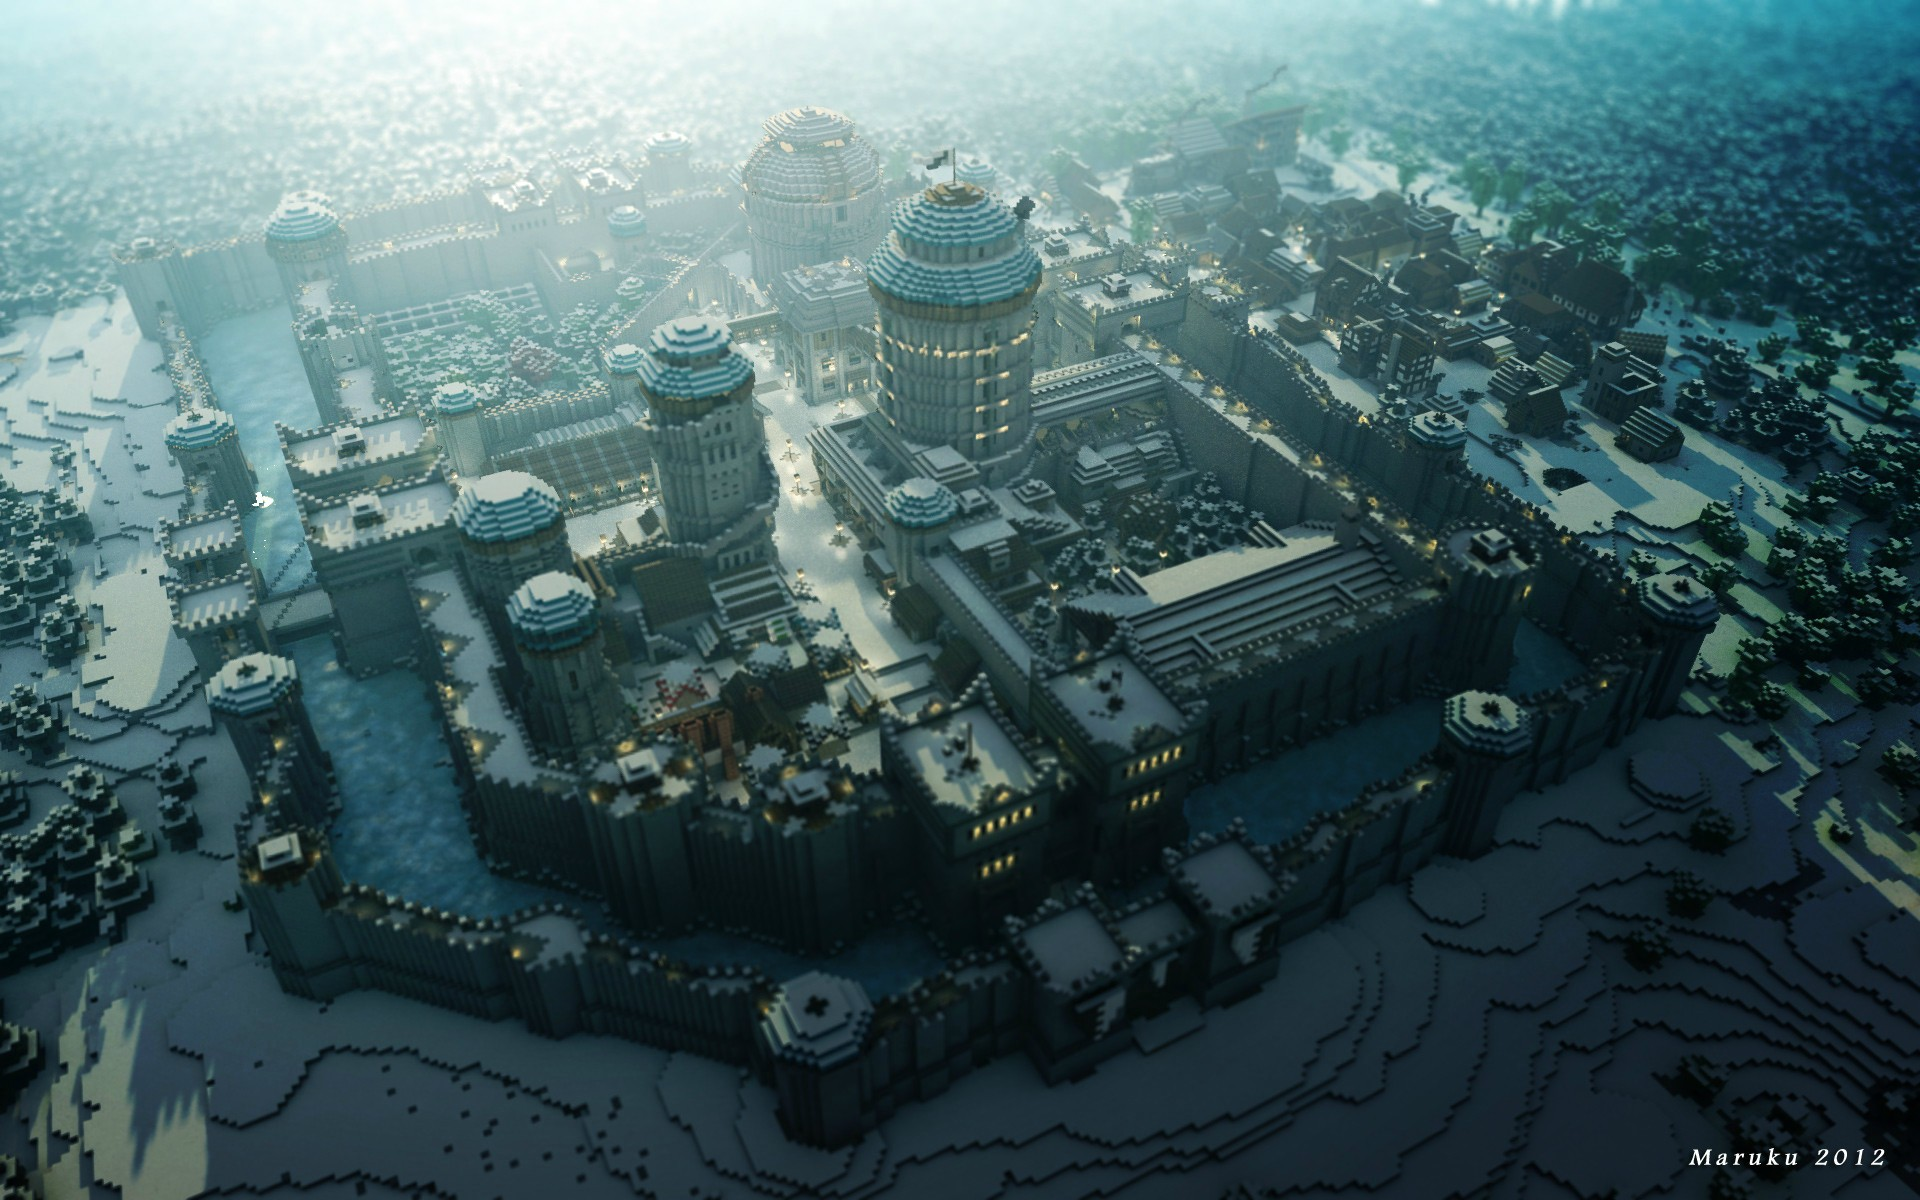 Guidecraft winterfell game of thrones created in minecraft seyls7t gumiabroncs Image collections